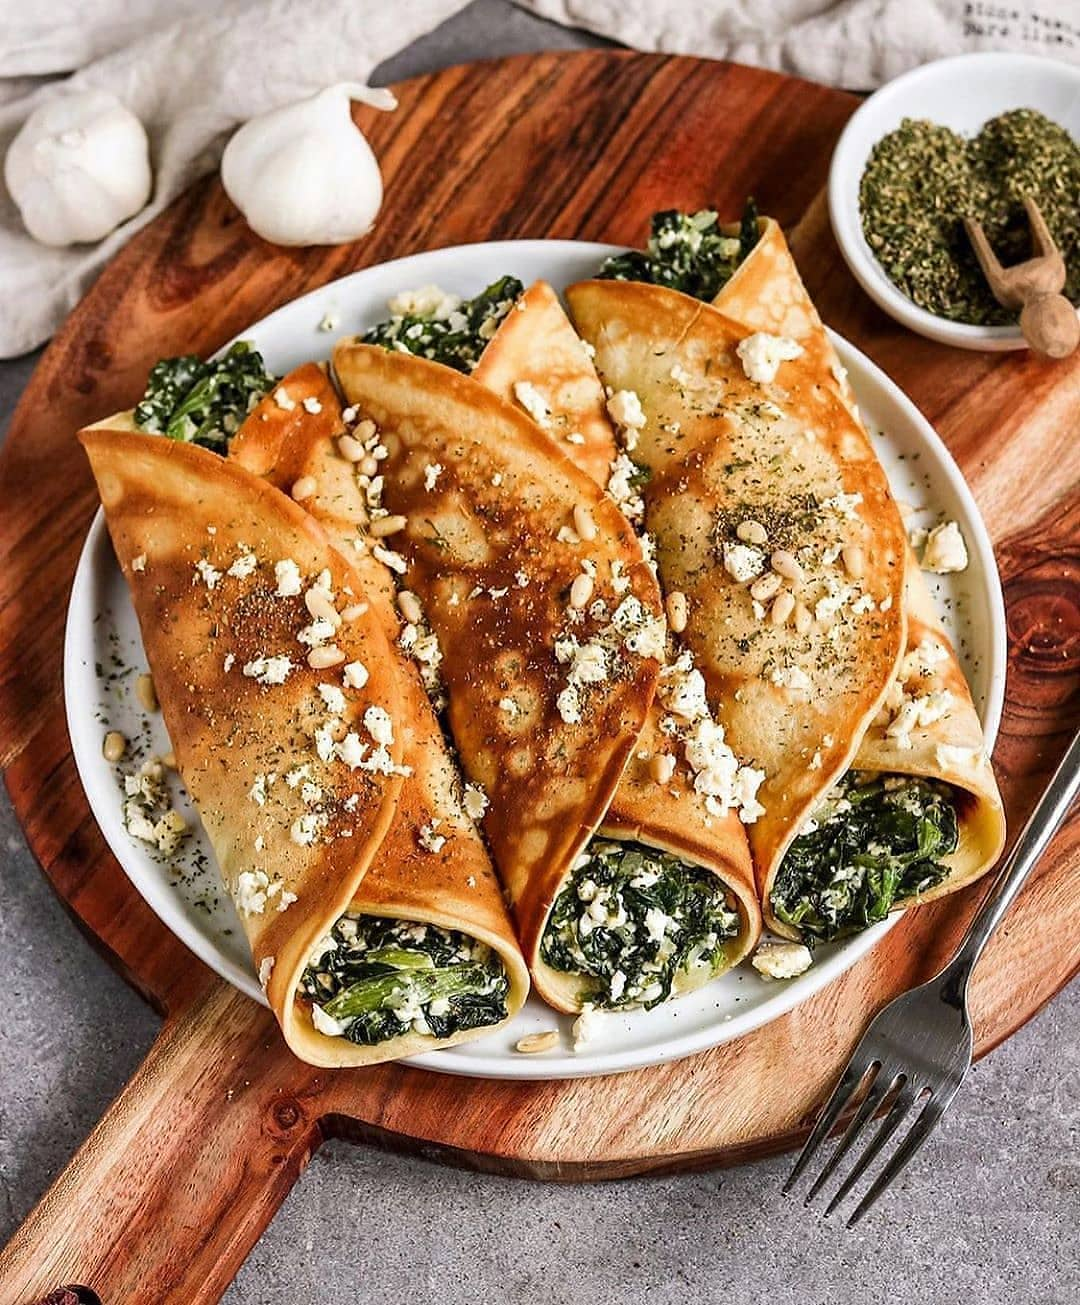 vegan oven baked filled crepes with spinach and feta by bya display image  ecb52d80